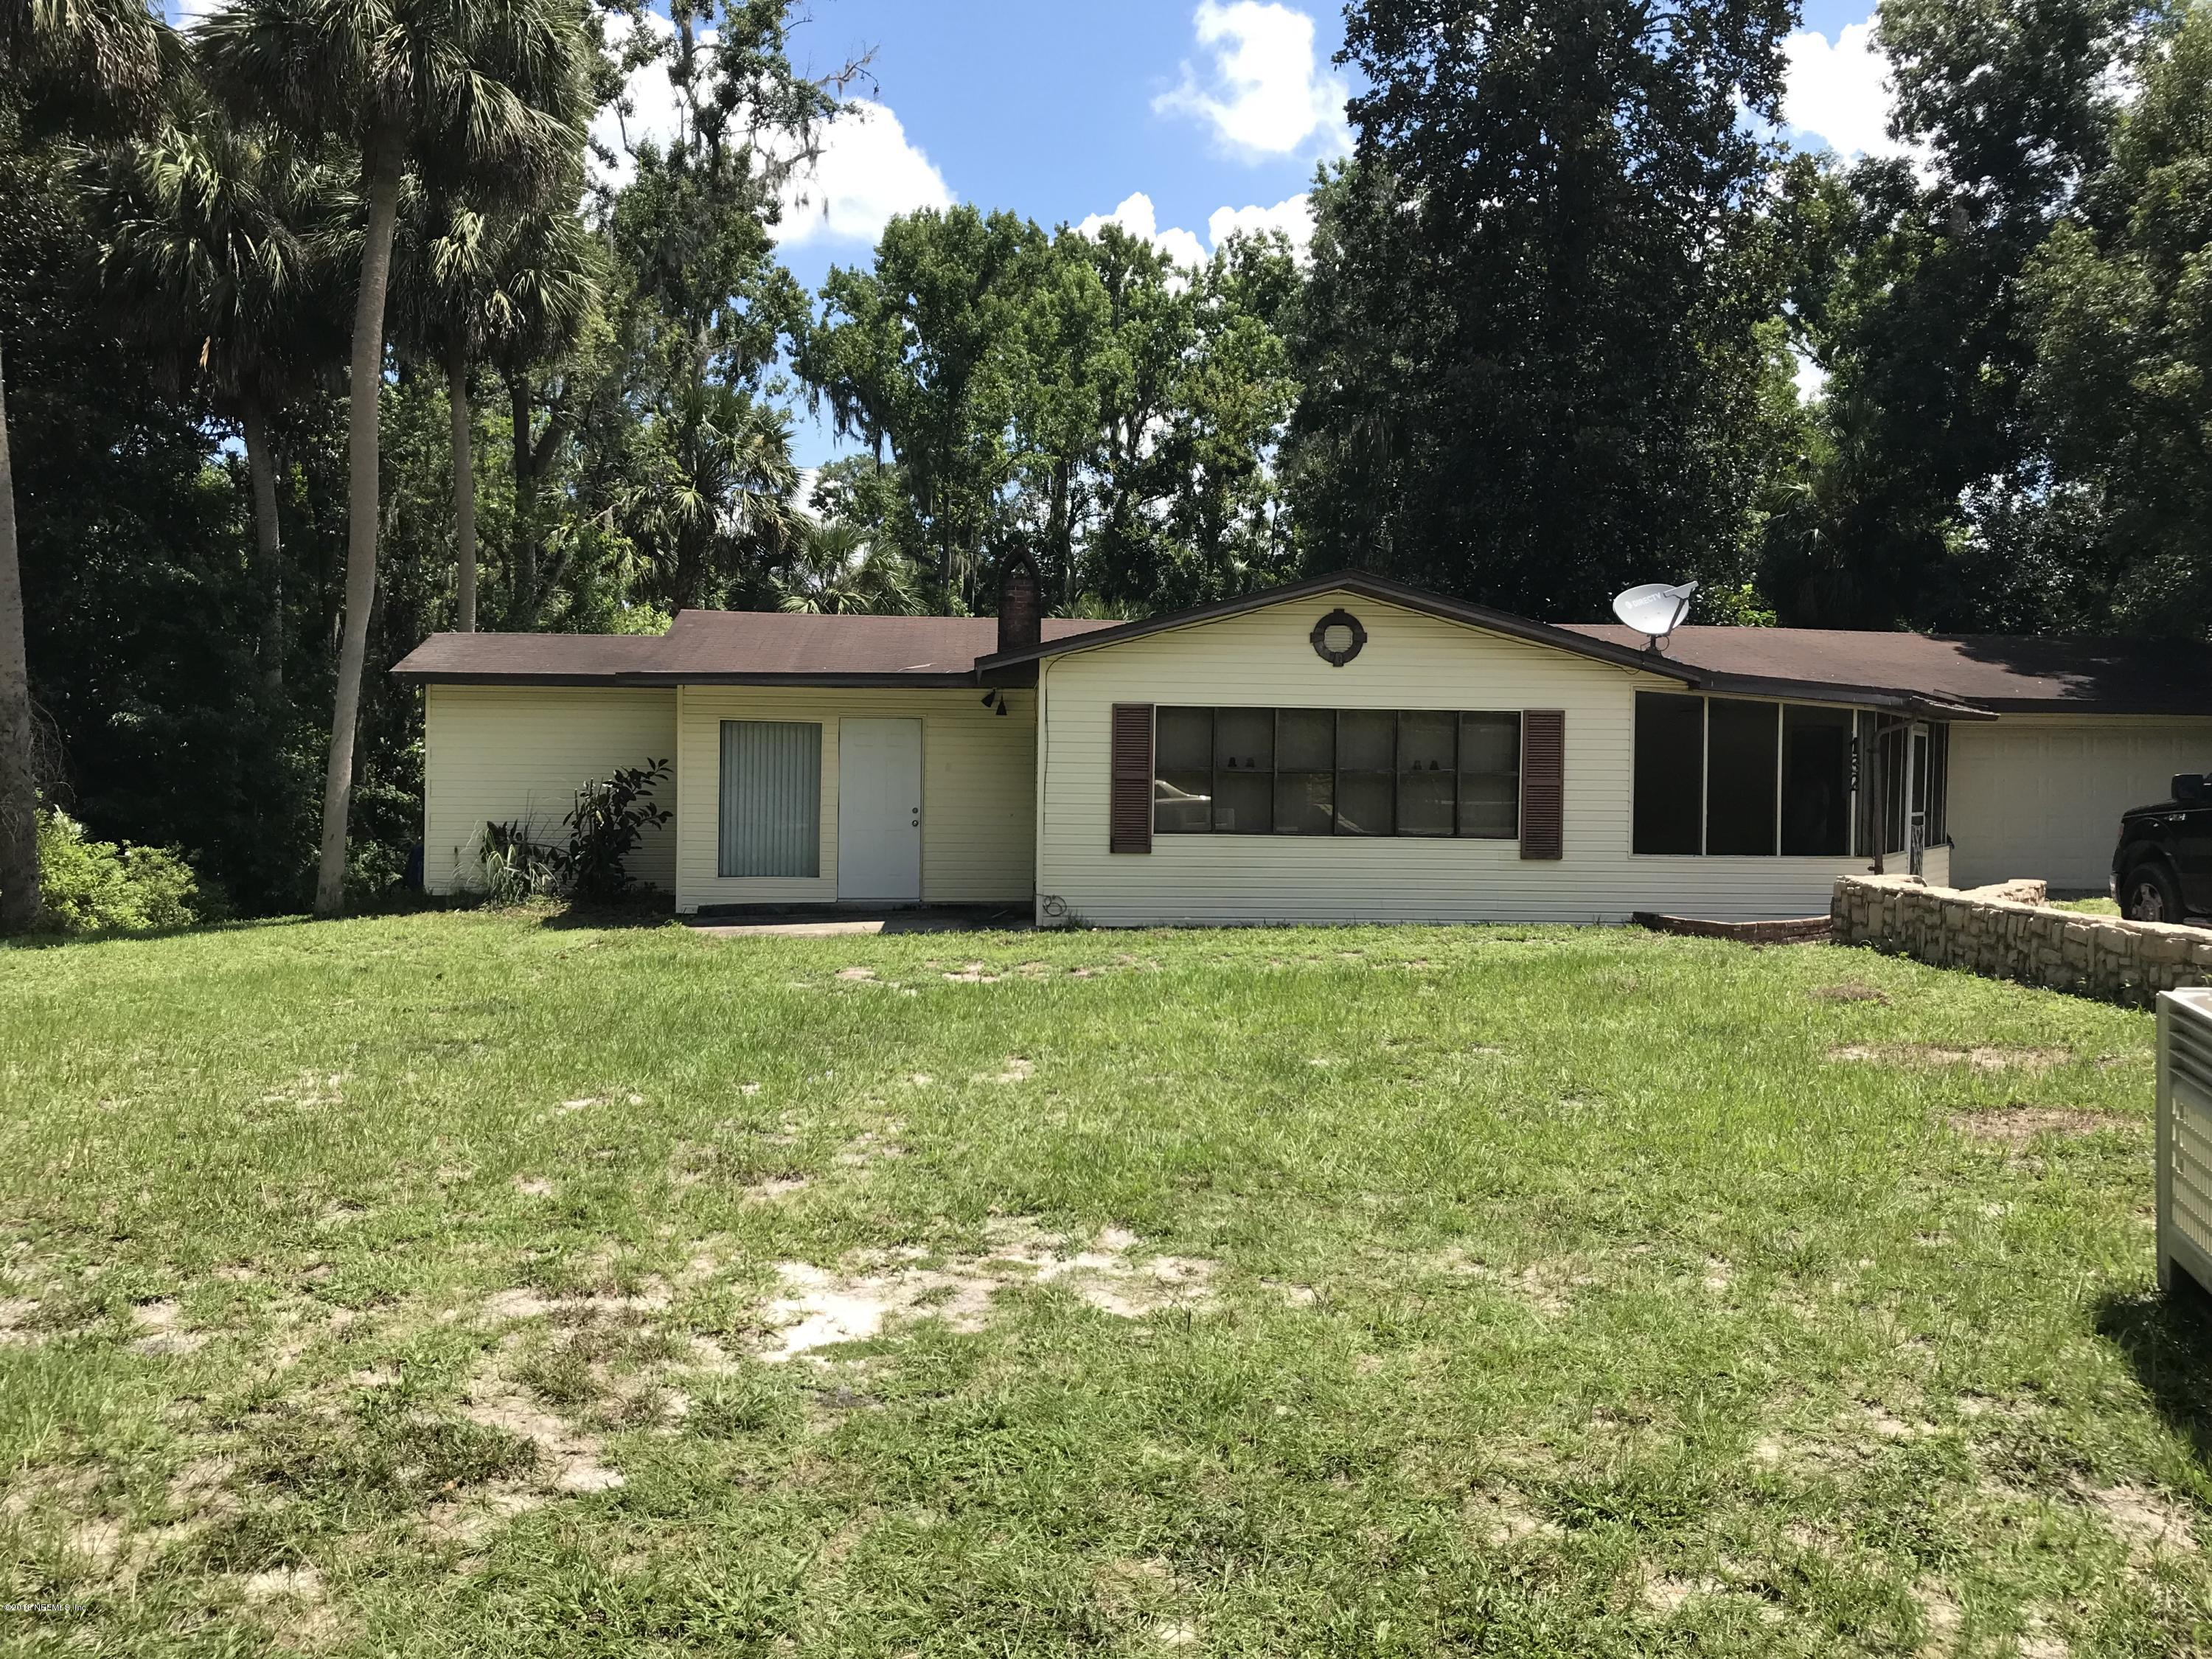 132 BROWNS, SAN MATEO, FLORIDA 32187, 3 Bedrooms Bedrooms, ,3 BathroomsBathrooms,Residential - single family,For sale,BROWNS,943669